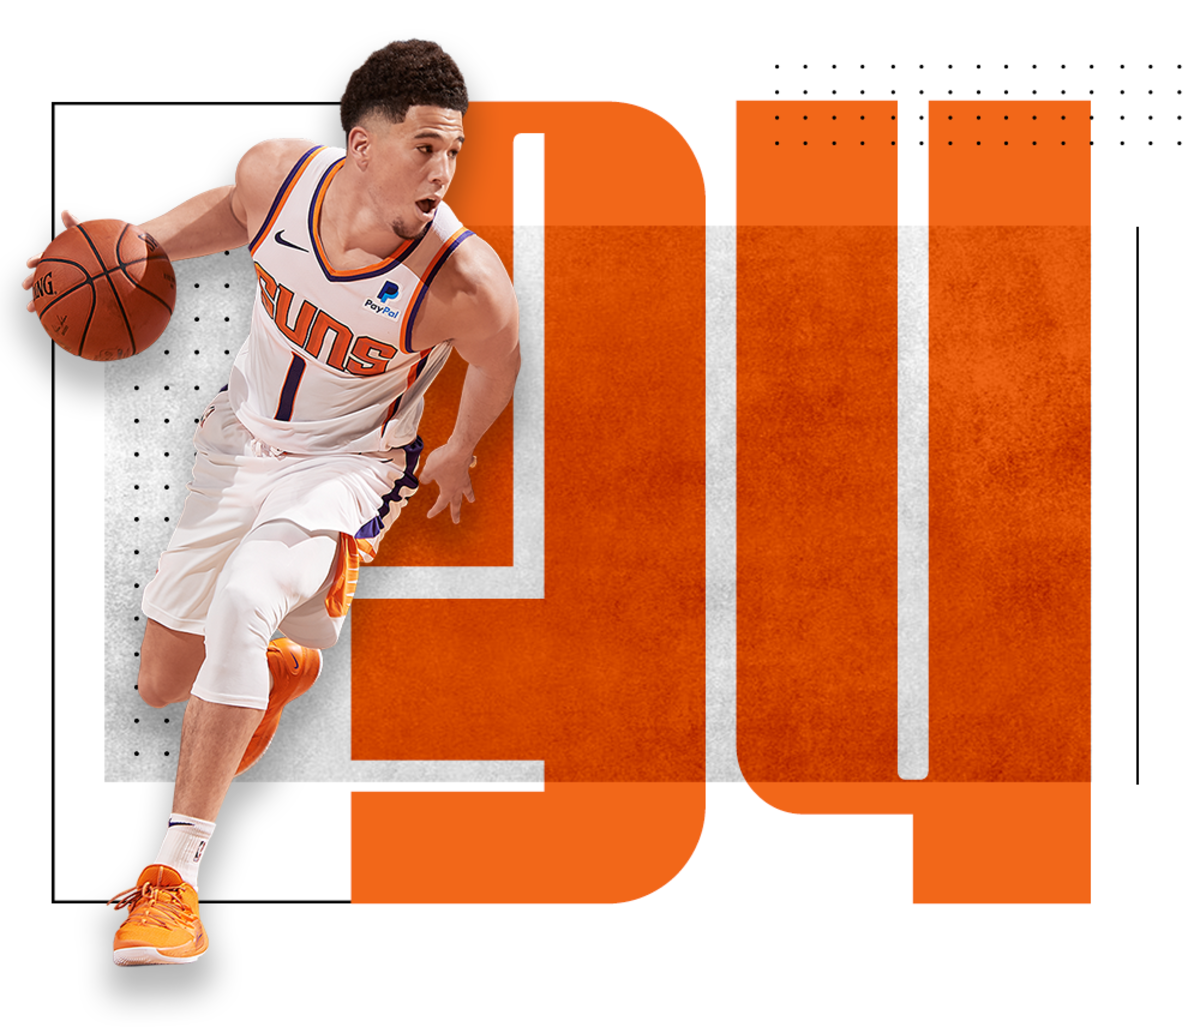 top-100-nba-players-2020-Devin-Booker.png